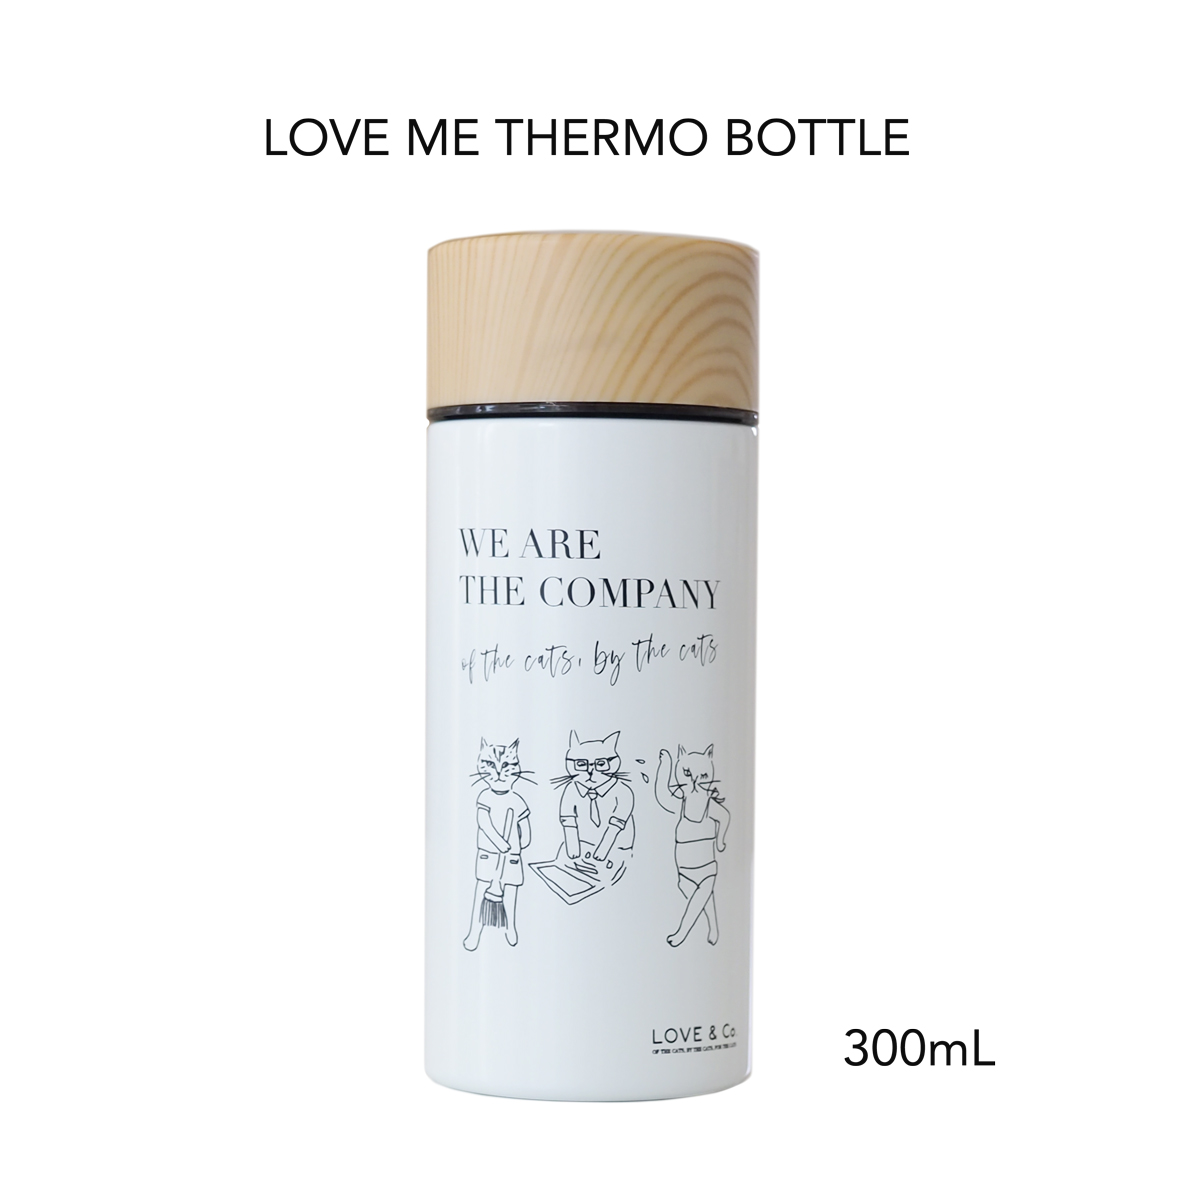 LOVE ME THERMO BOTTLE画像